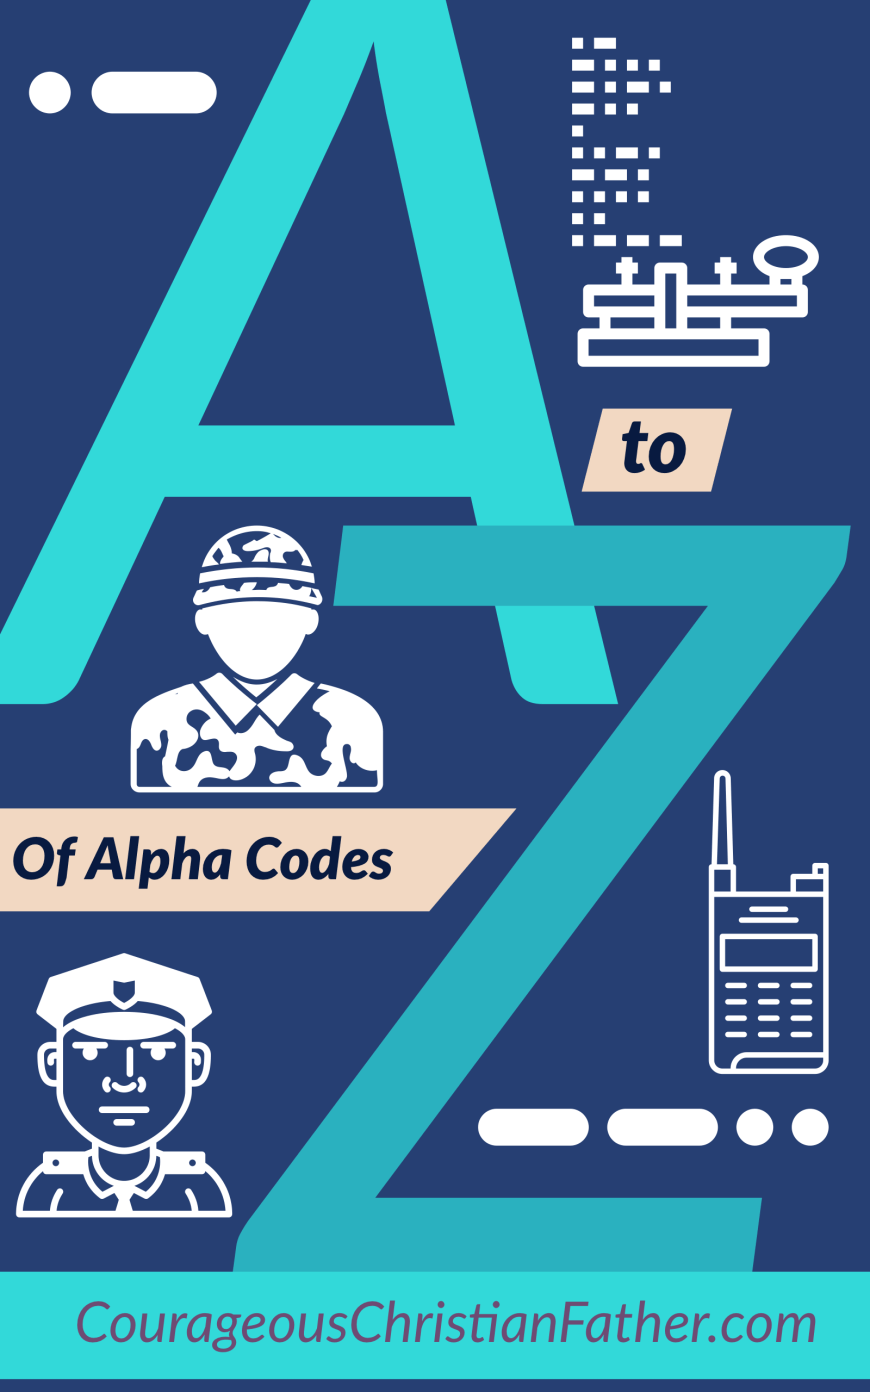 Alpha Codes - These are the codes often used by the military and police for each letter of the alphabet. Includes MoresCode, 1913, 1927, 1938, World War II and 1957-Present. #AlphaCodes